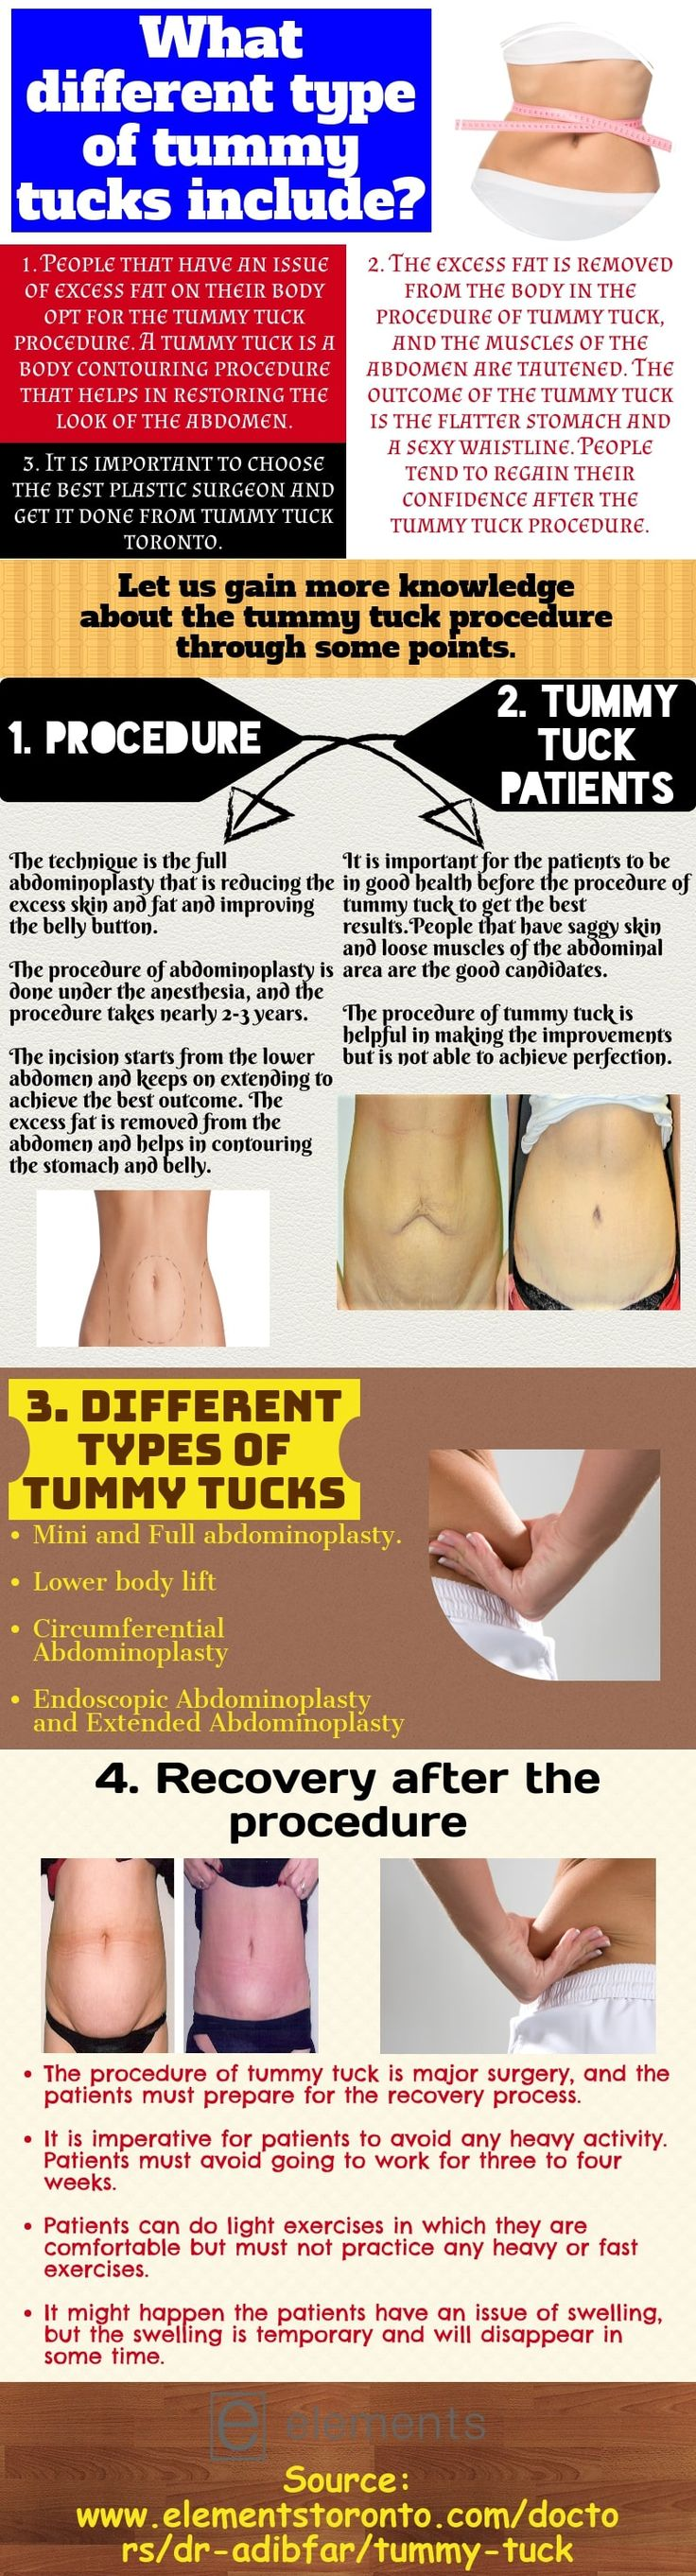 Procedure of tummy tuck to get the best results Tummy